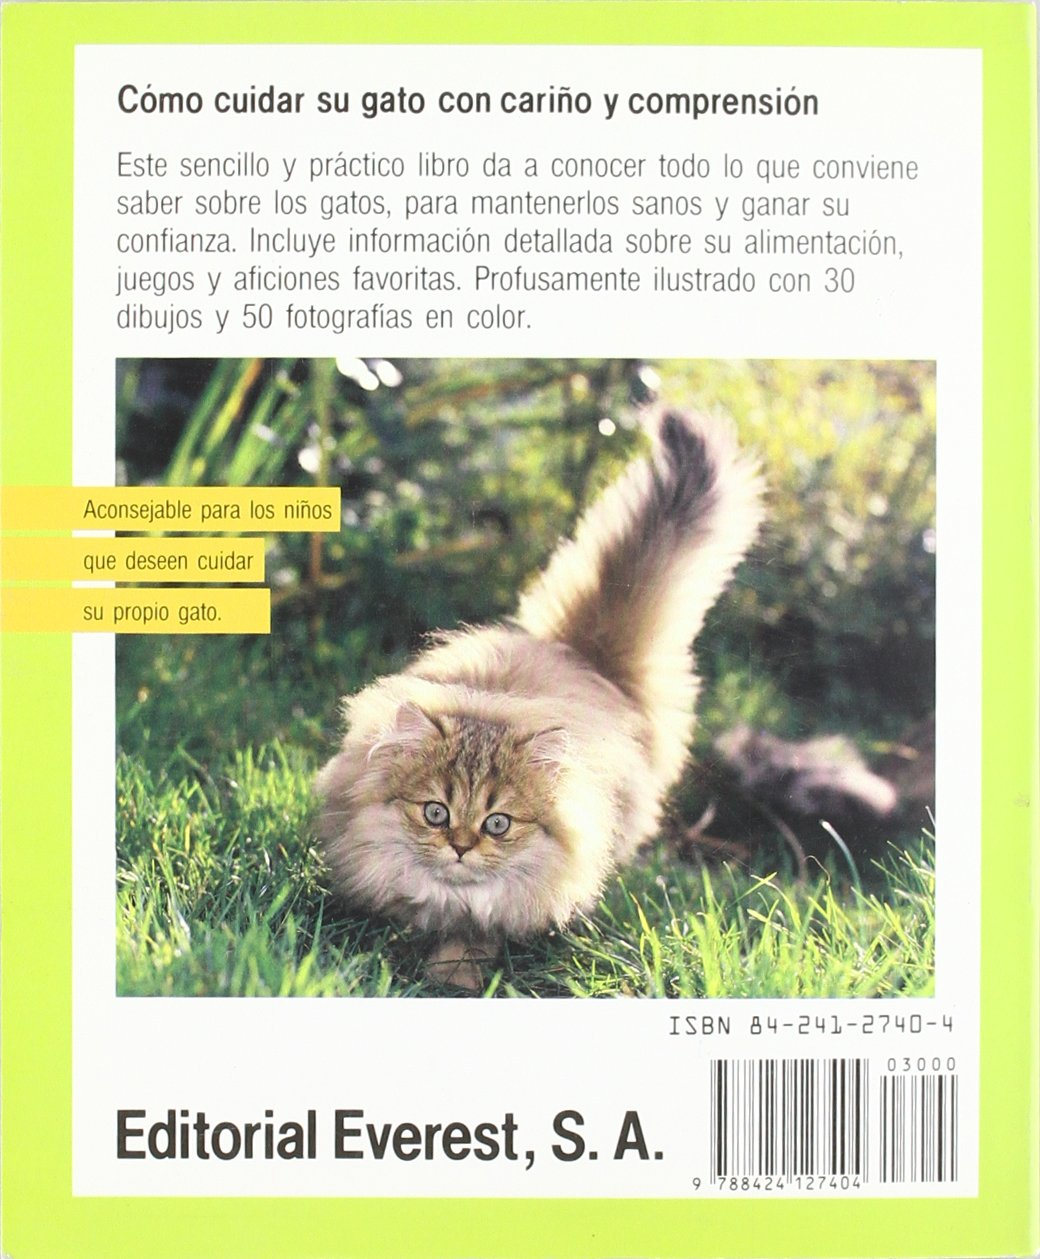 Gatos - Saber Cuidarlos y Comprenderlos (Spanish Edition): Katrin Behrend: 9788424127404: Amazon.com: Books